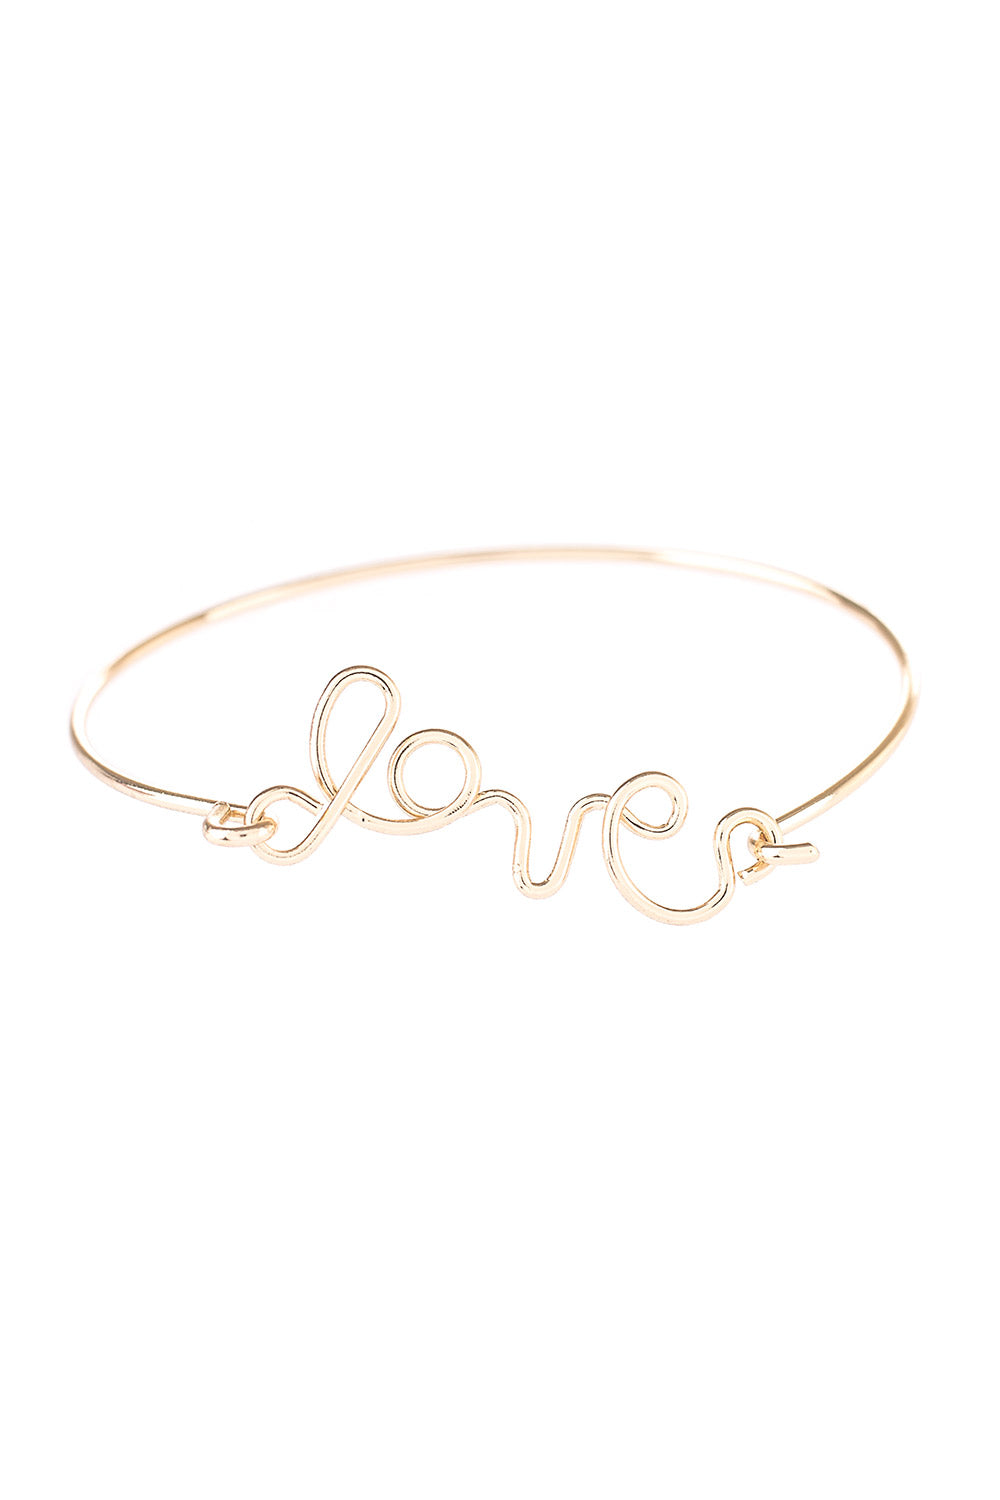 Type 1 Golden Love Bracelet